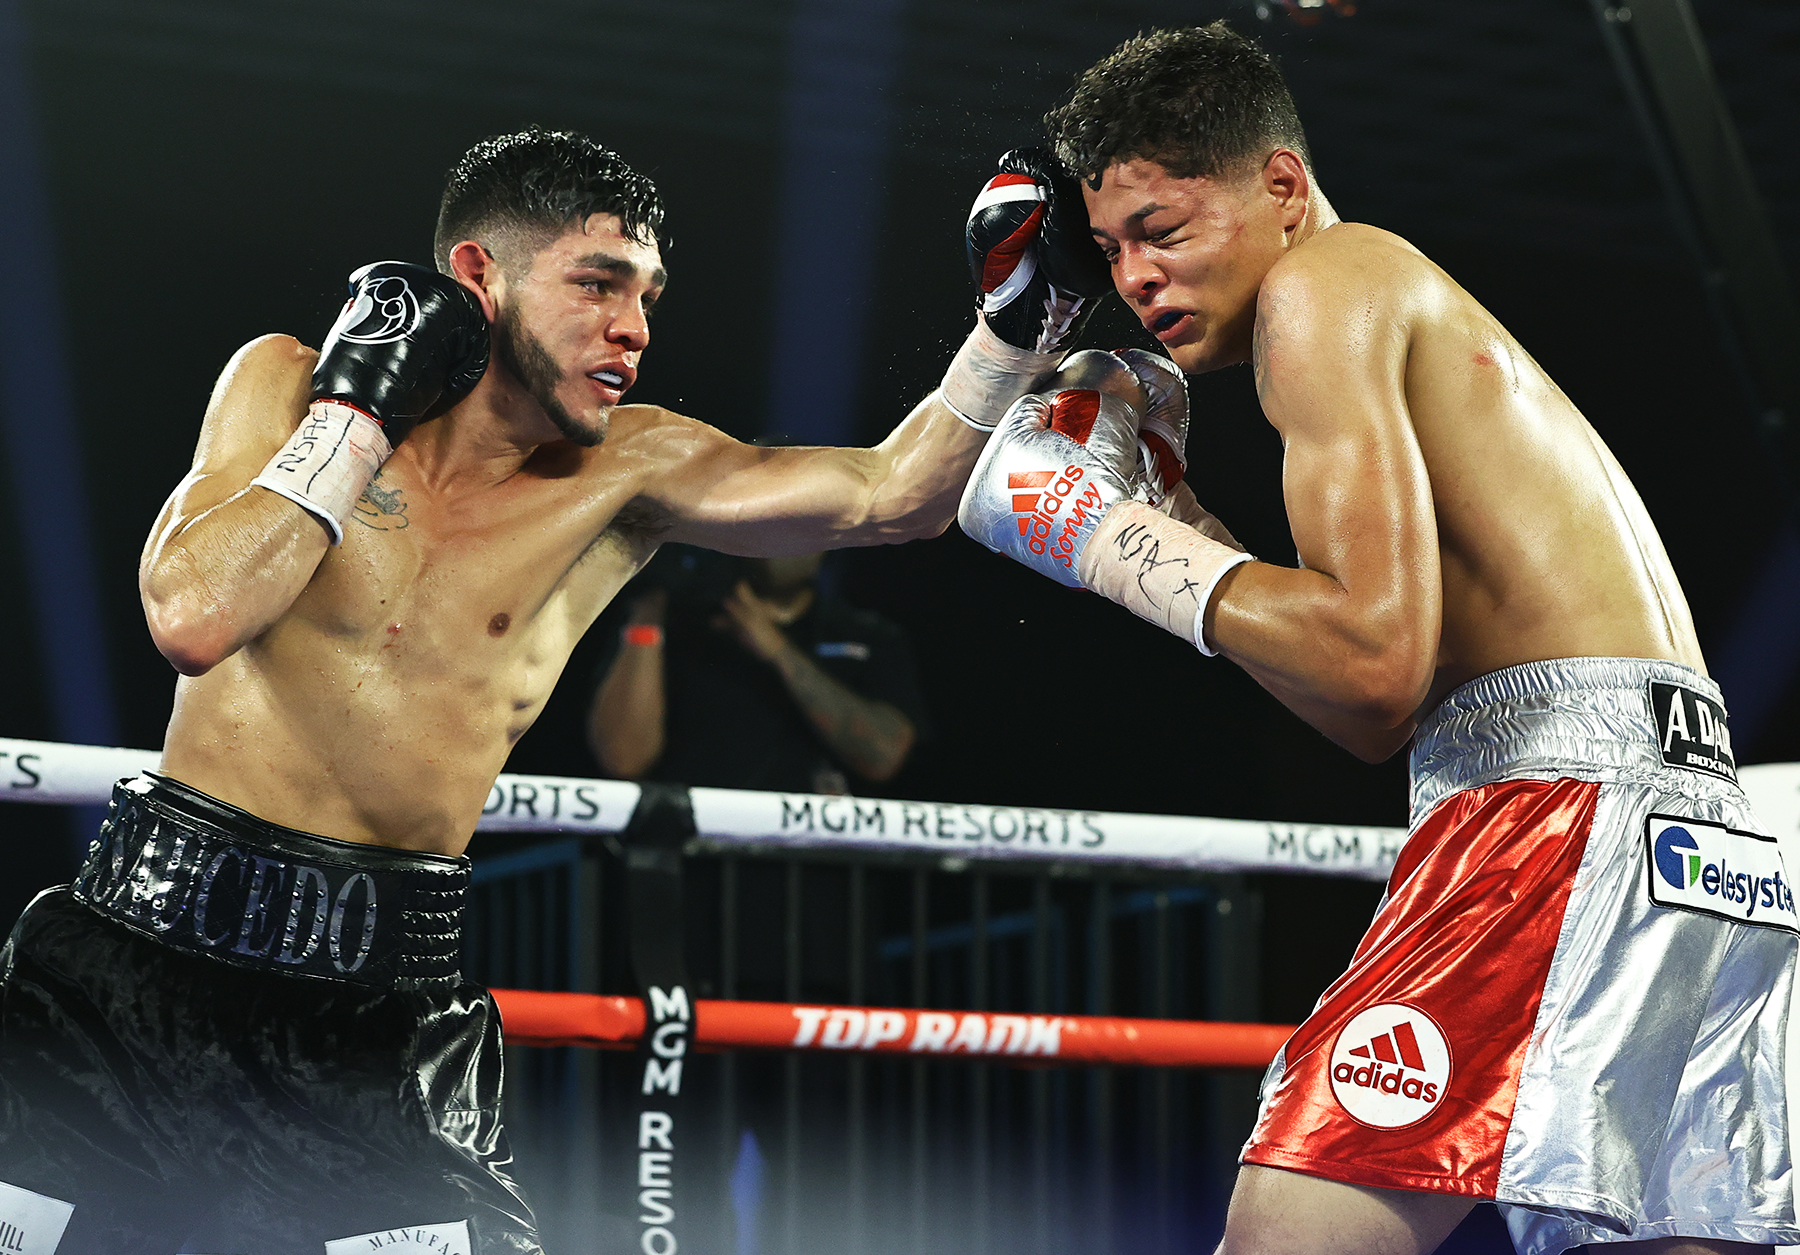 Alex Saucedo (left) vs. Sonny Fredrickson. Photo credit: Mikey Williams/Top Rank